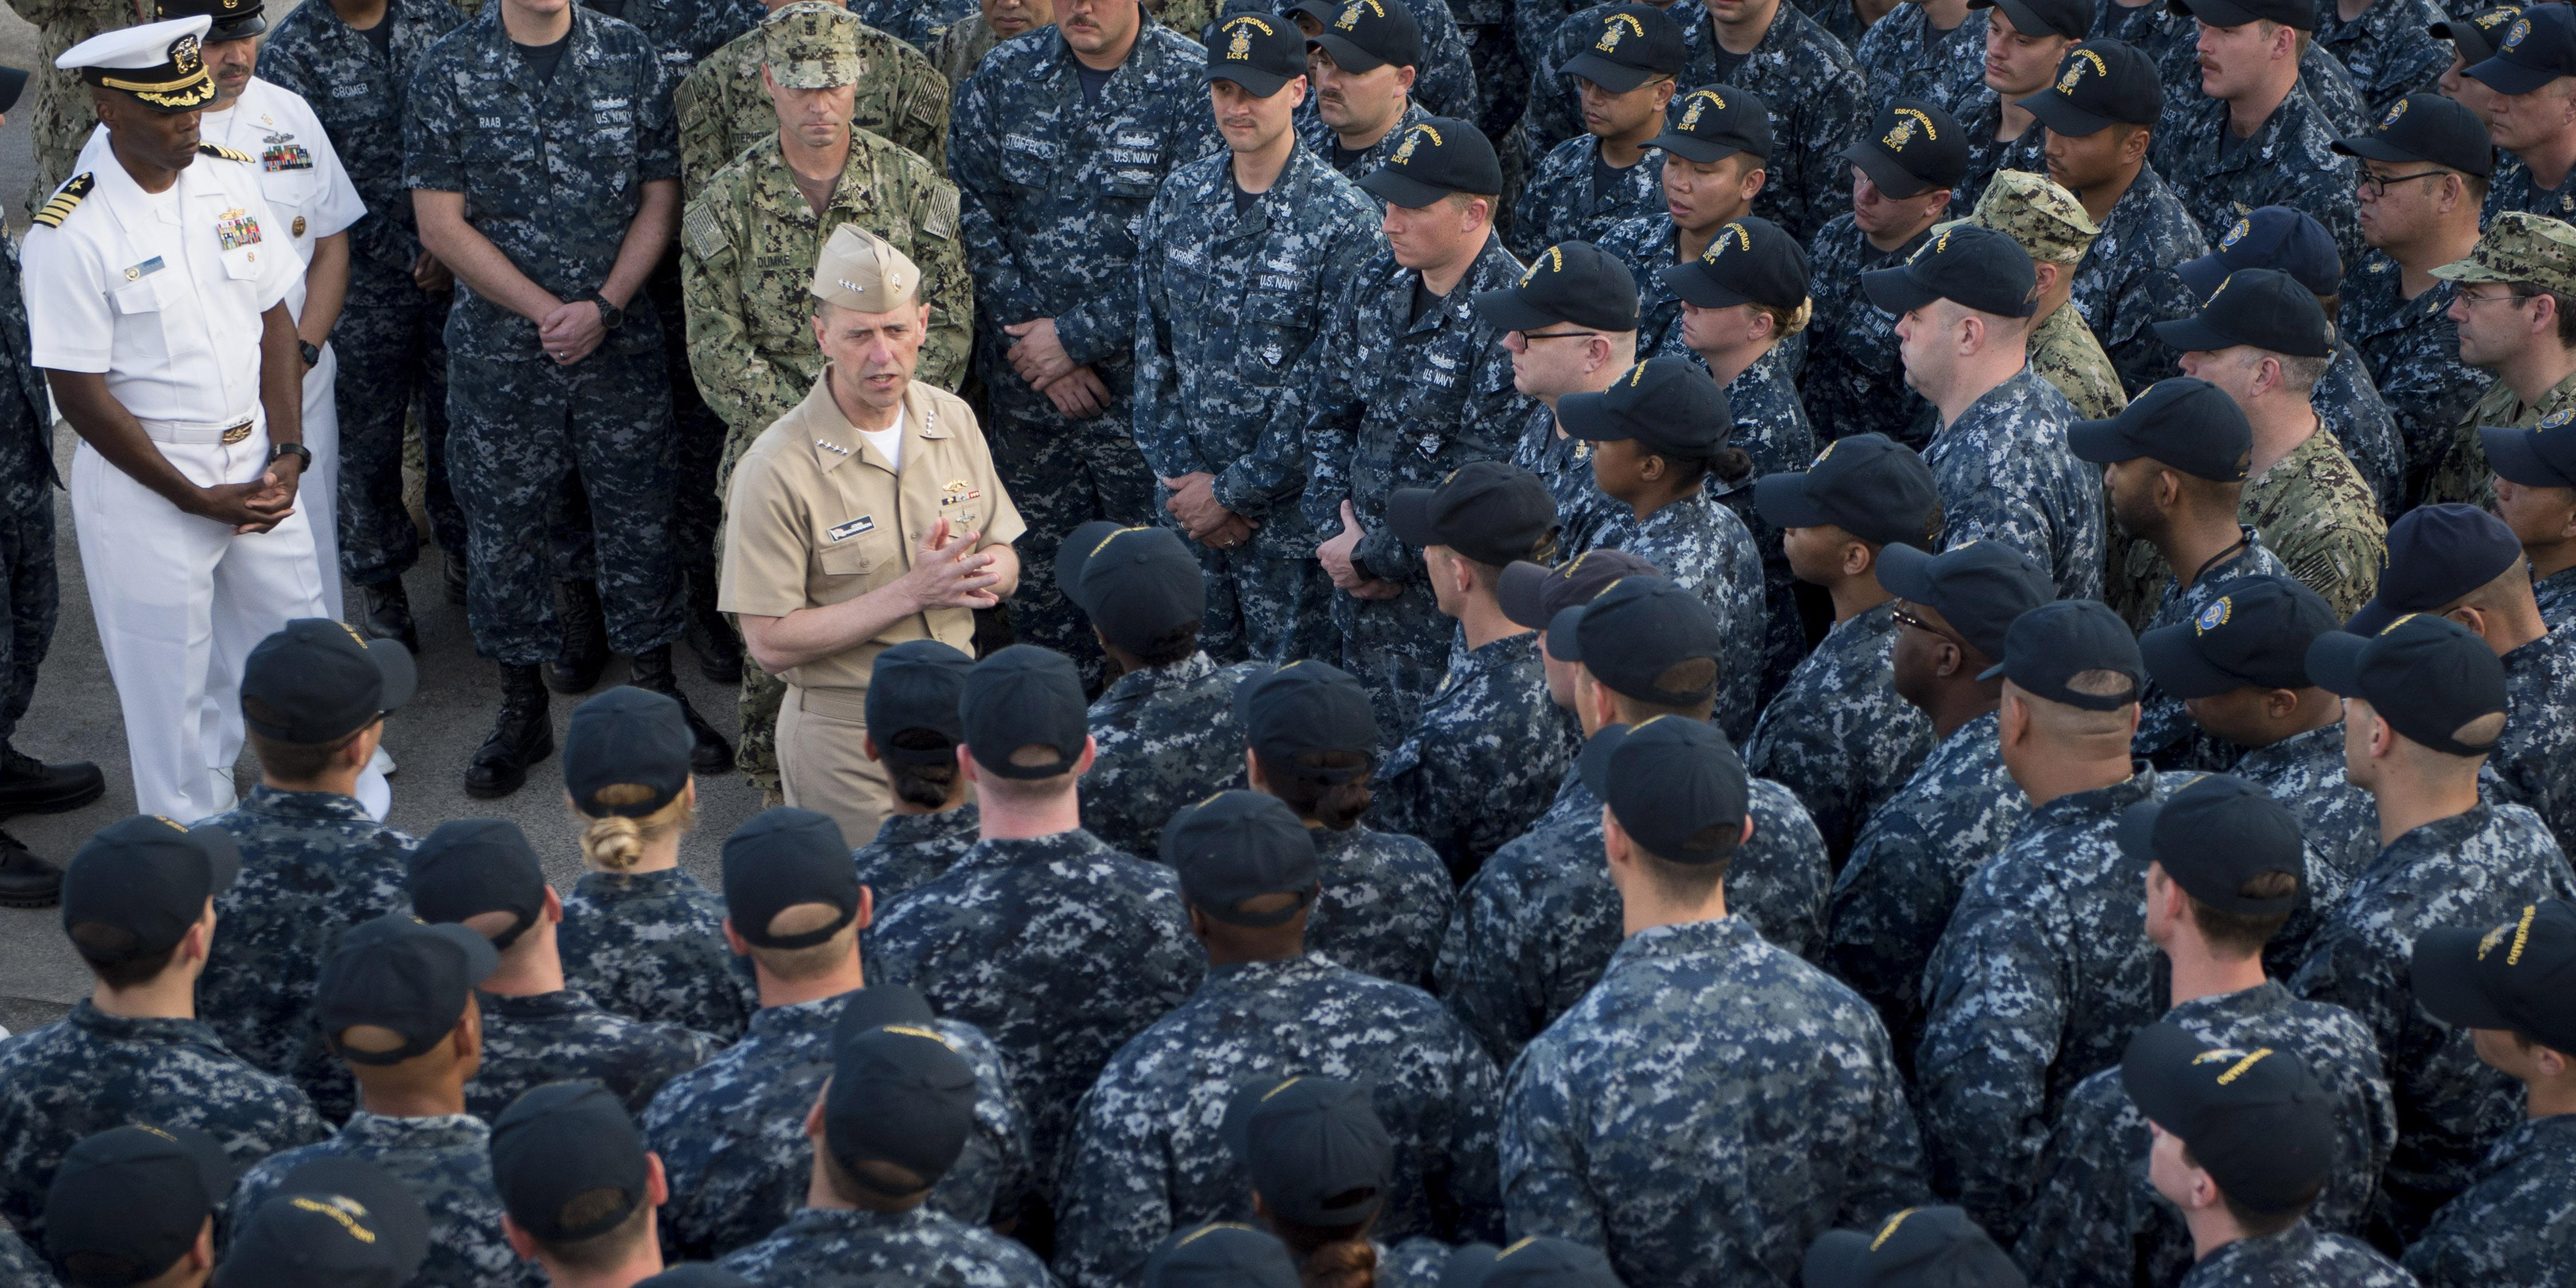 Chief of Naval Operations Adm. John Richardson, USN, holds an all-hands call aboard the littoral combat ship USS Coronado as the ship is moored in Singapore on Tuesday. Photo by Petty Officer 1st Class Nathan Laird, USN